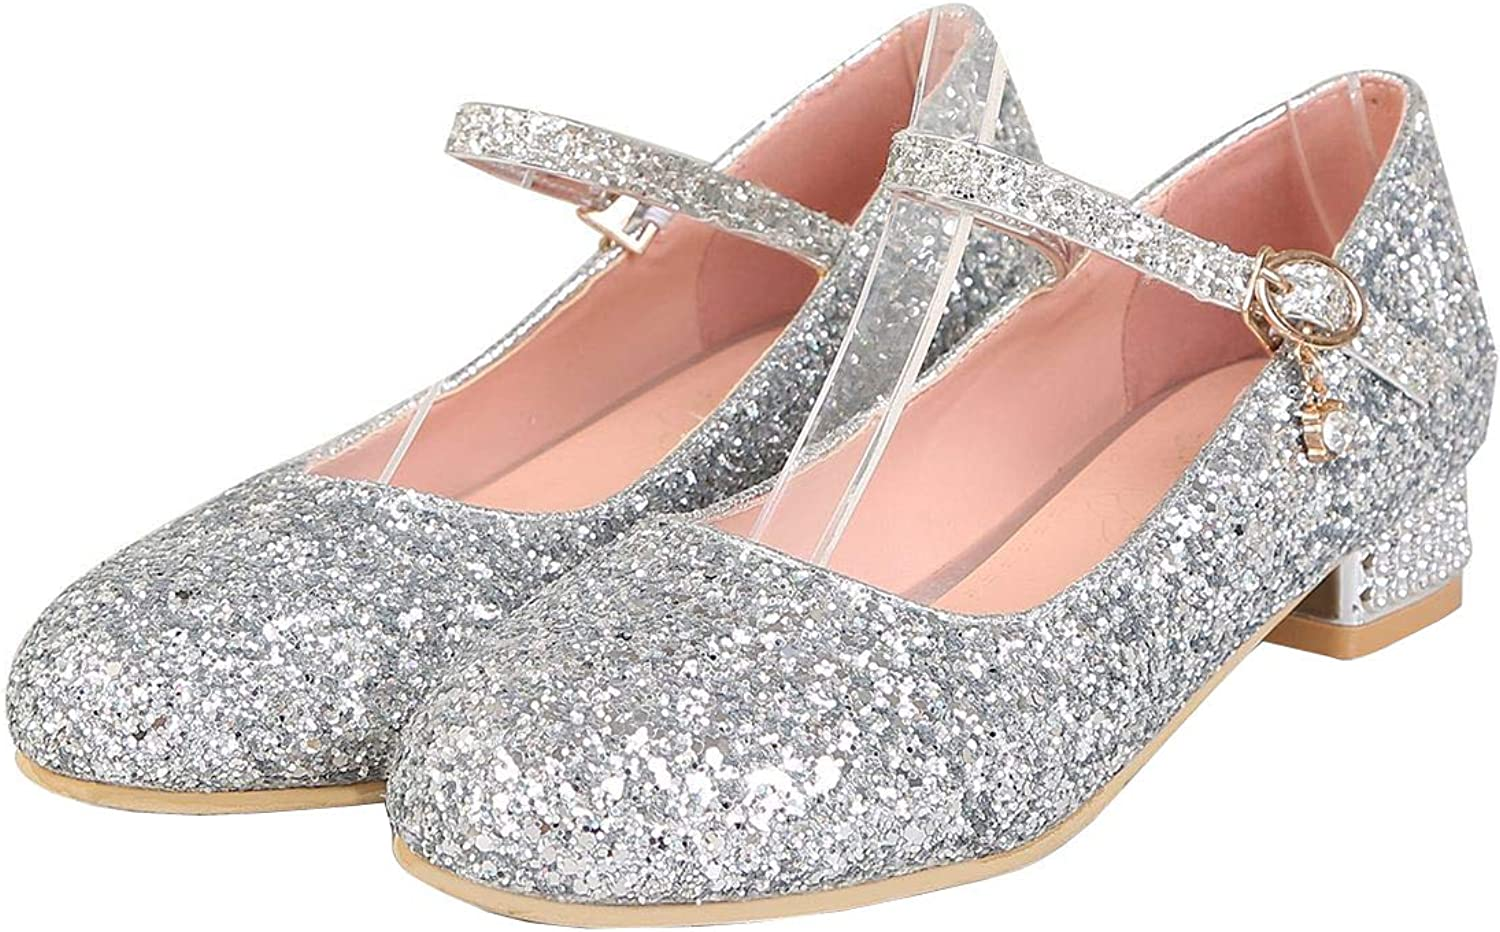 Vitalo Womens Low Chunky Heel Glitter Mary Jane Ankle Strap Sparkly Dress Pumps